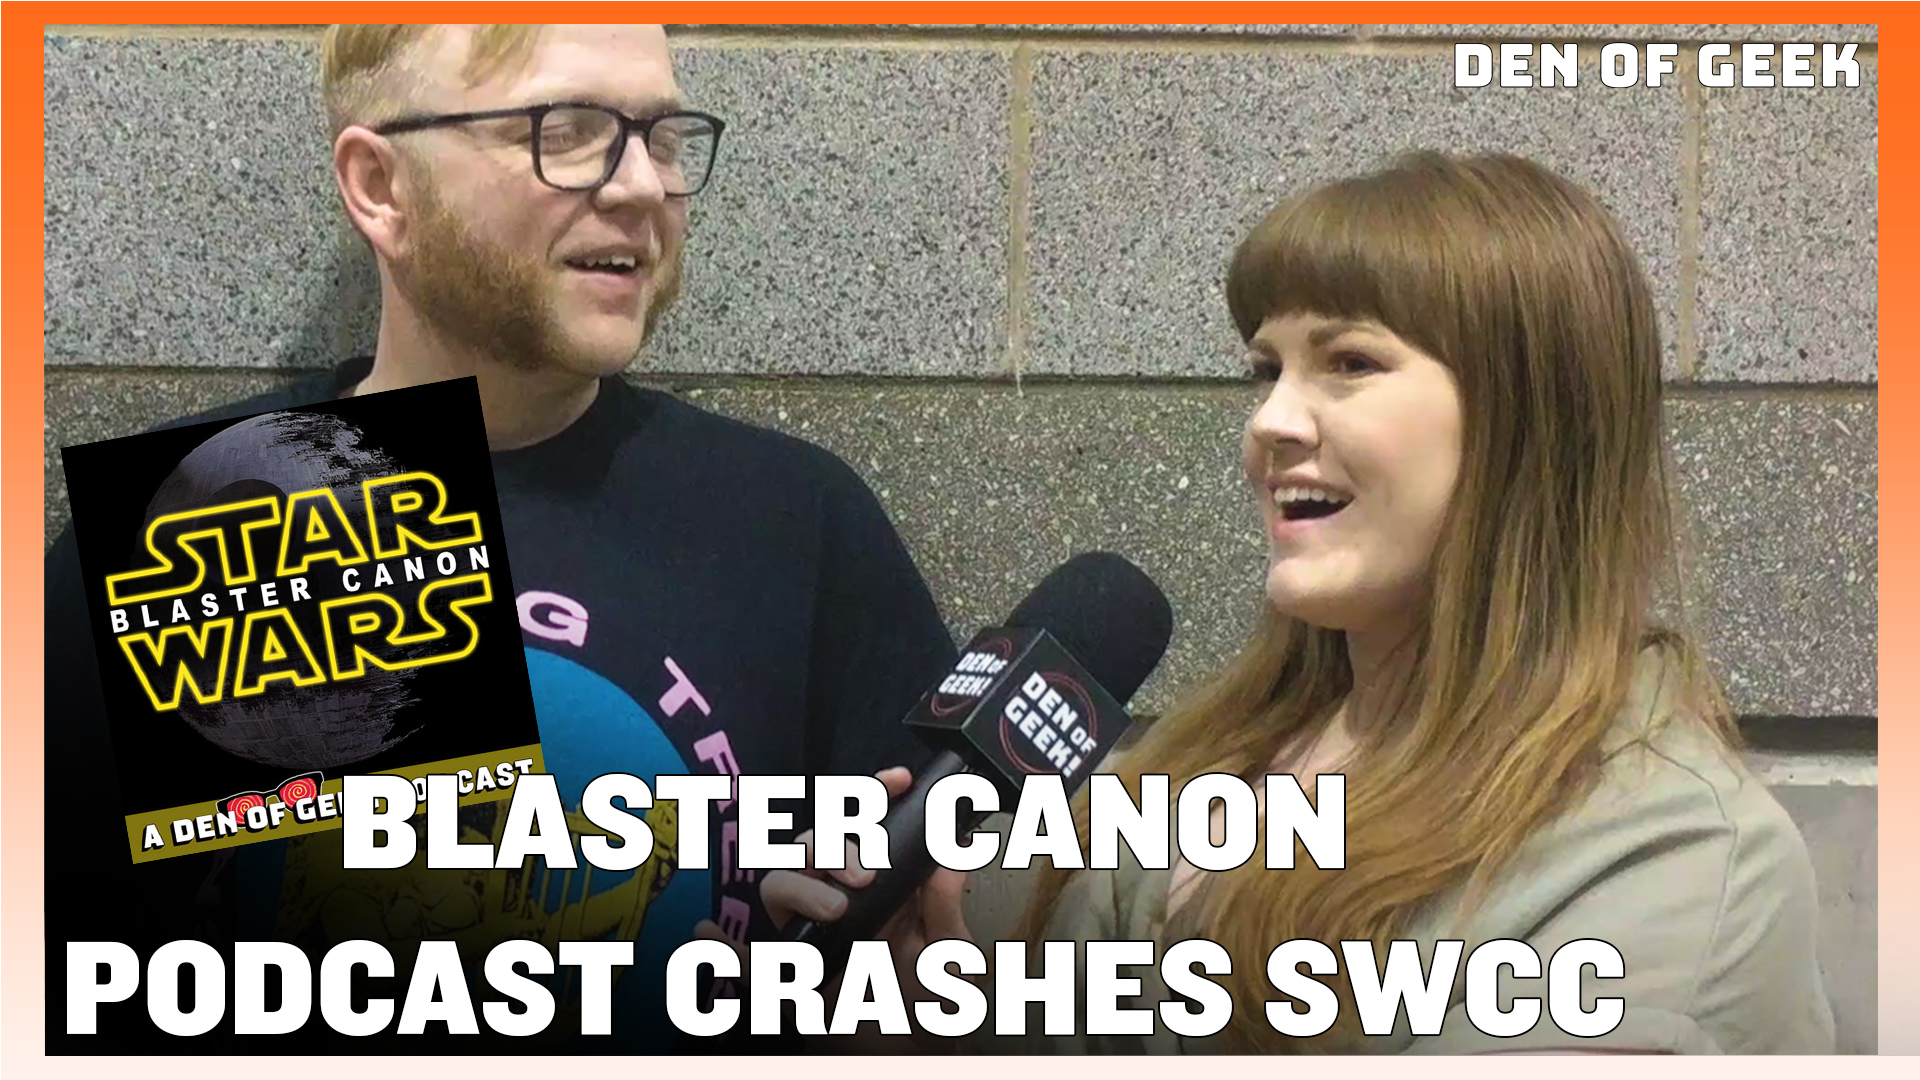 The Blaster Canon Podcast Crashes SWCC